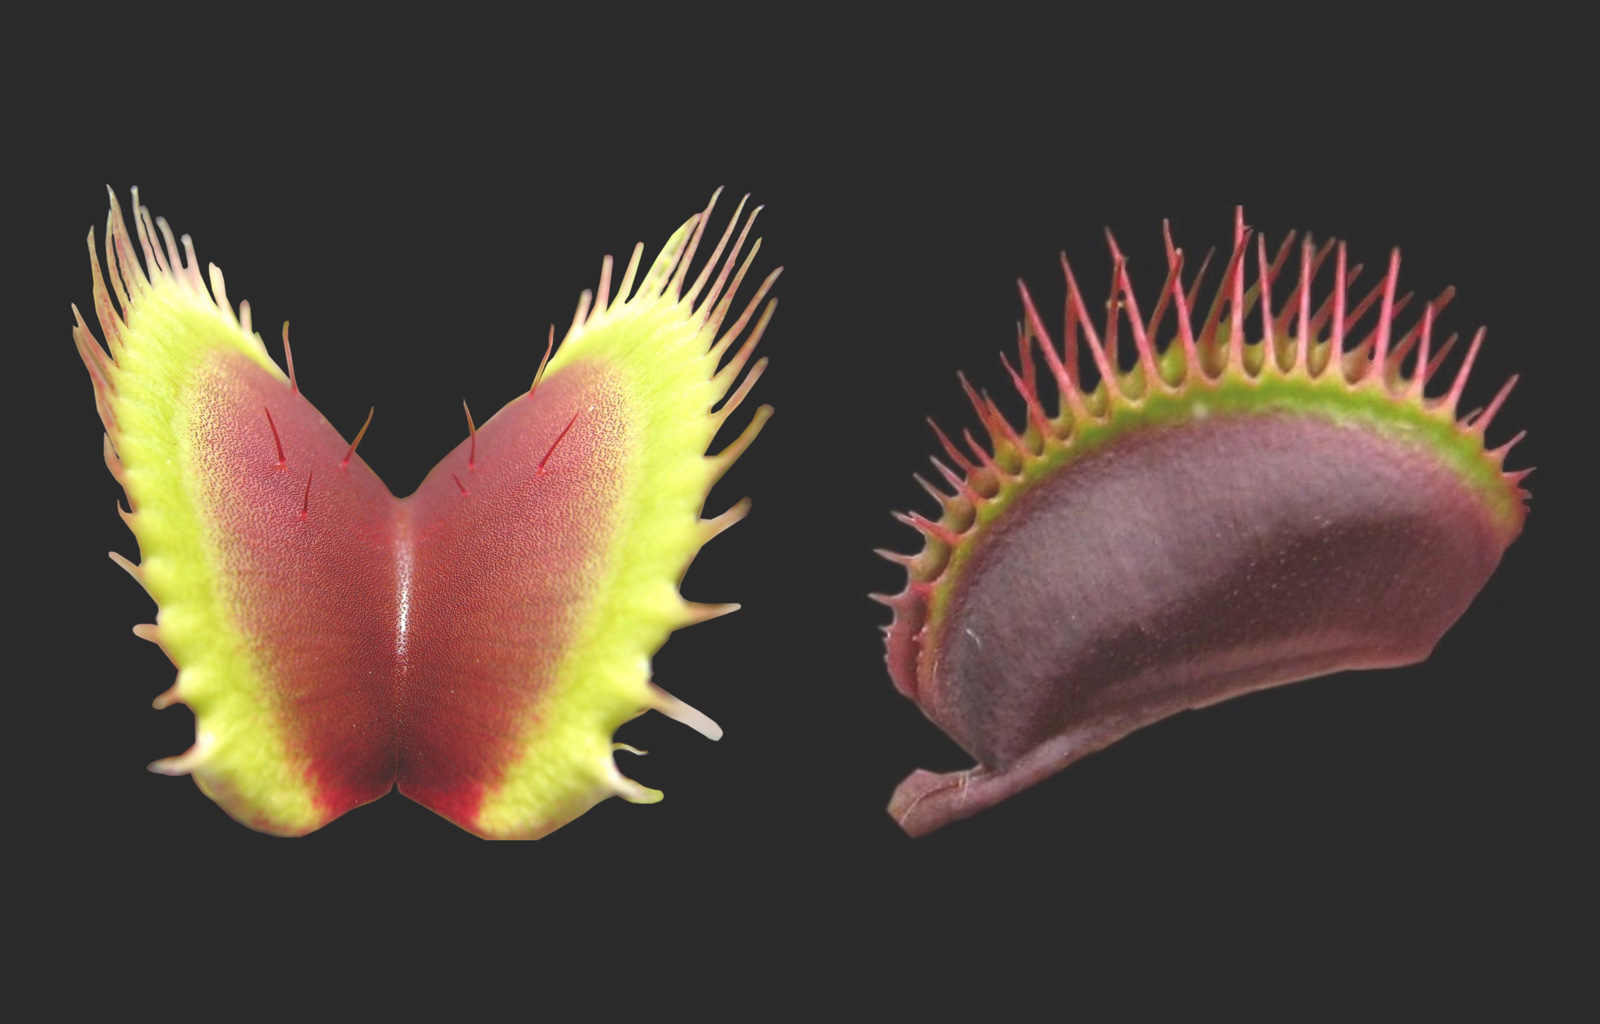 Trap leaf of a venus fly trap (Dionaea muscipula); the two halves of the modified trap leaf show snap buckling, speeding up the movement when being touched by prey animals (Plant Biomechanics Group Freiburg)